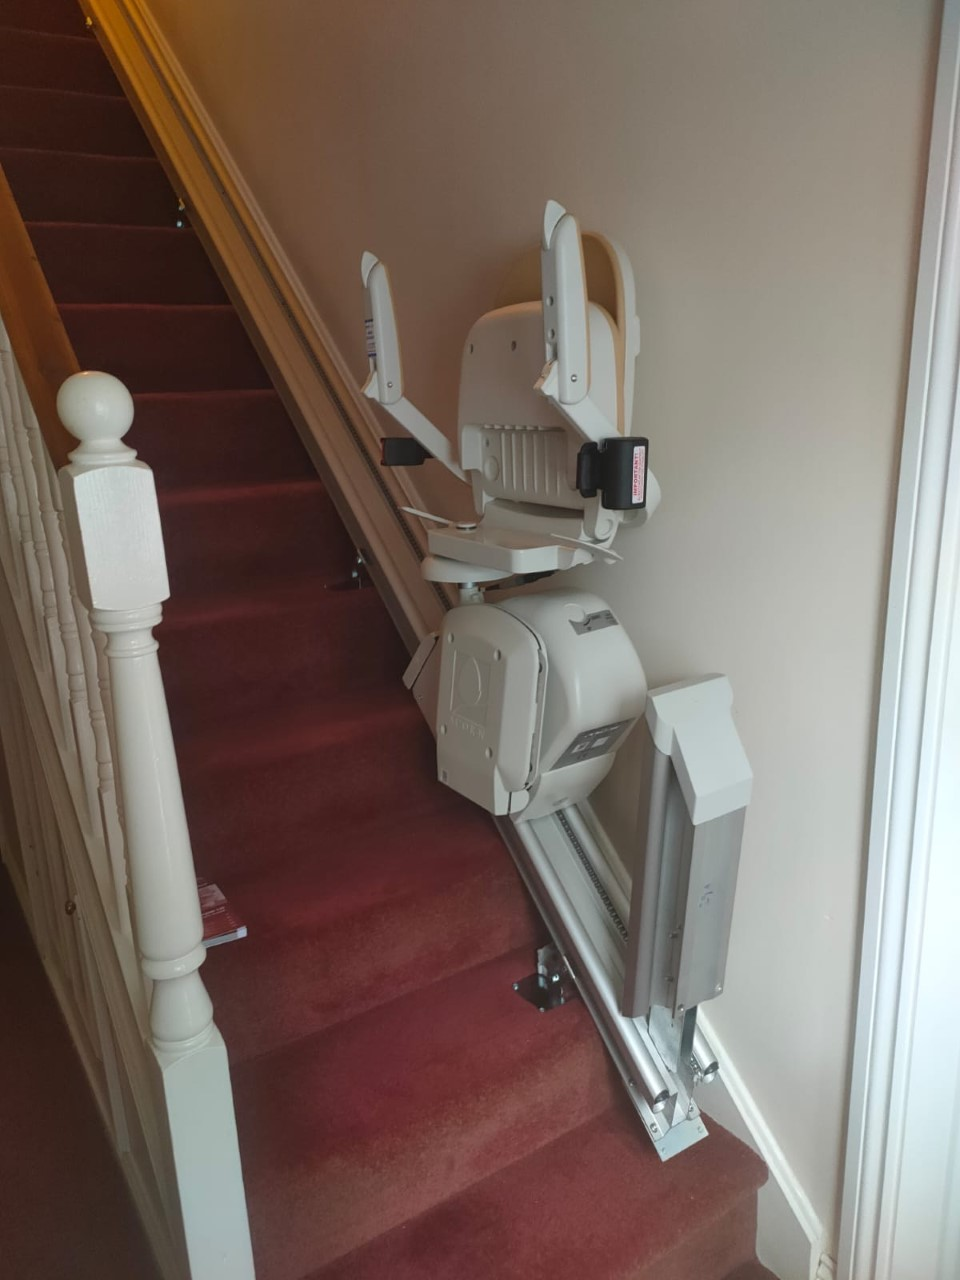 Rental stairlift photo